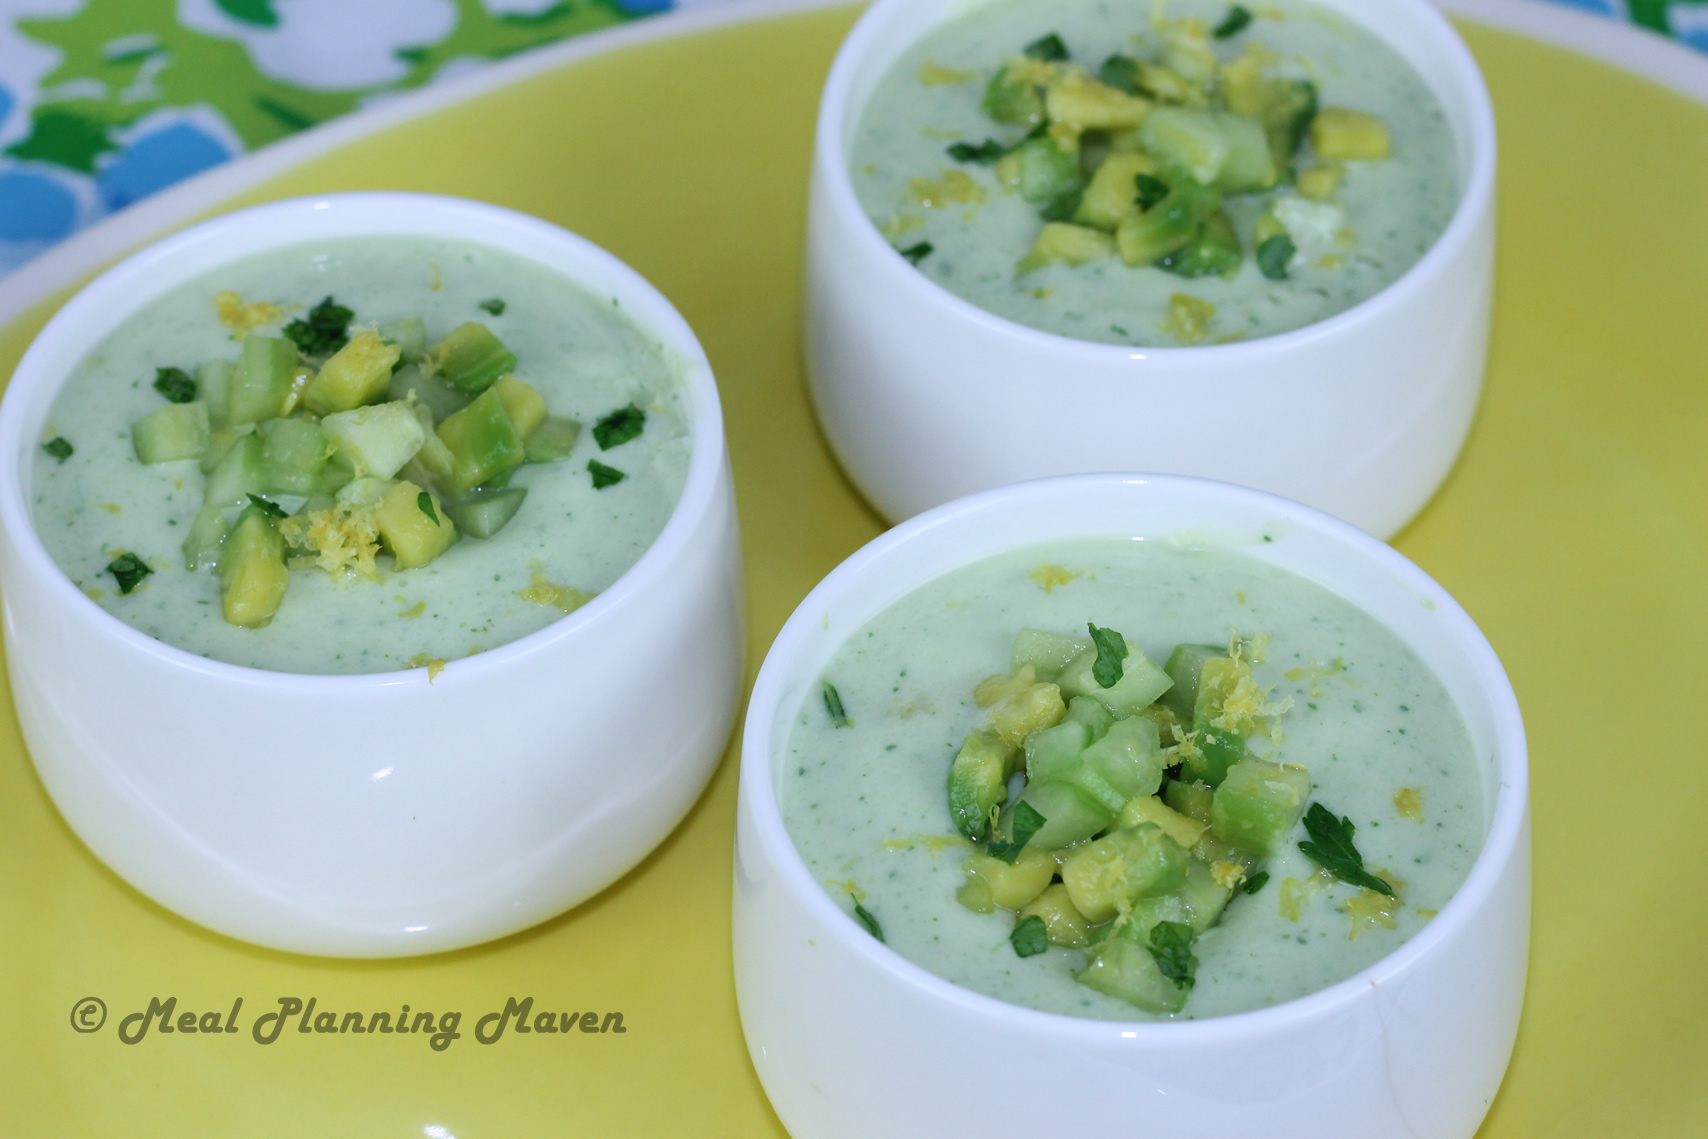 Jenn's Chilled Cucumber-Avocado Soup